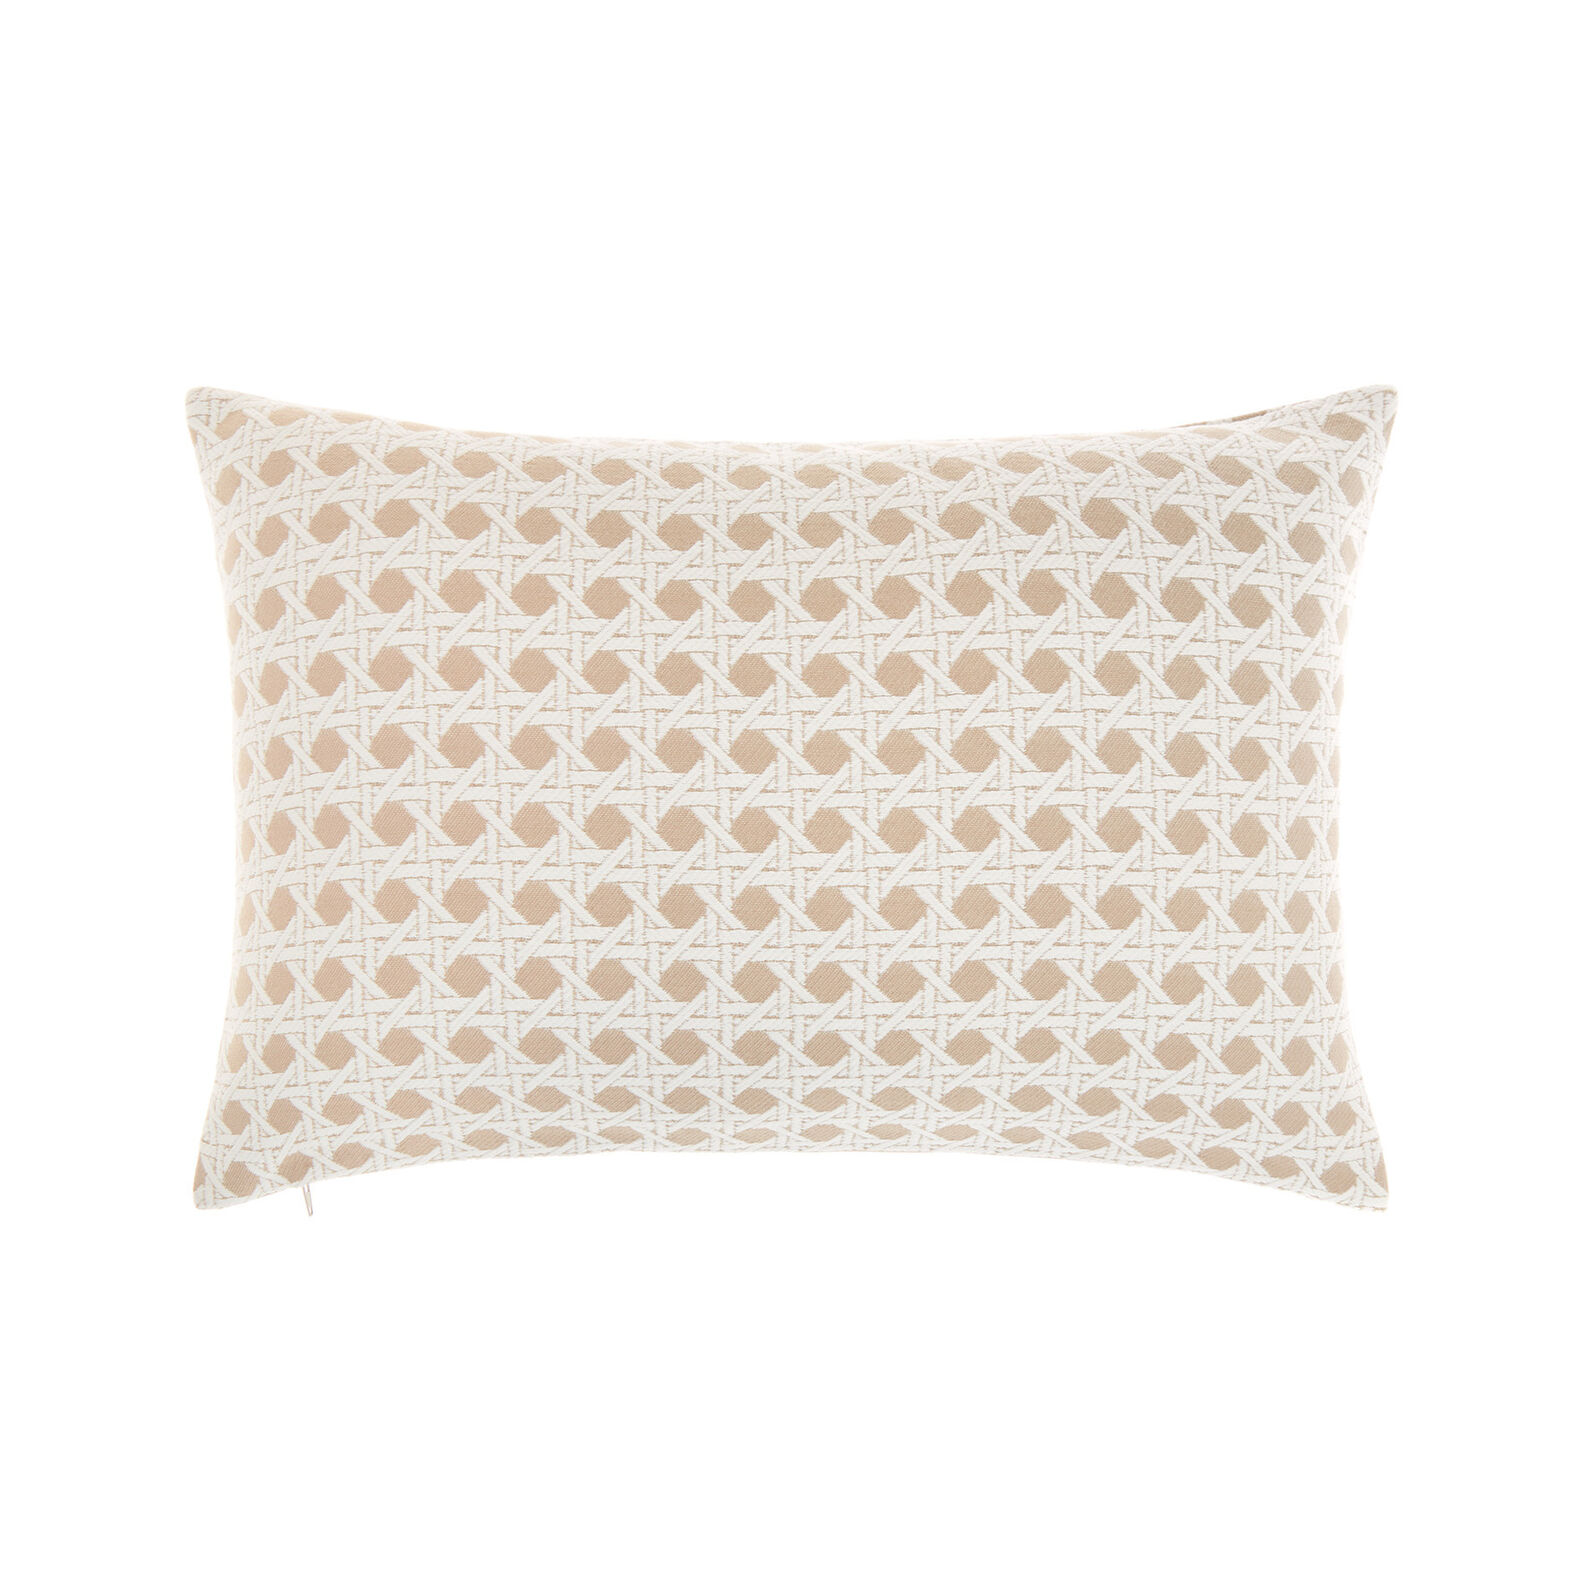 Braided jacquard cushion with rattan effect 35x55cm